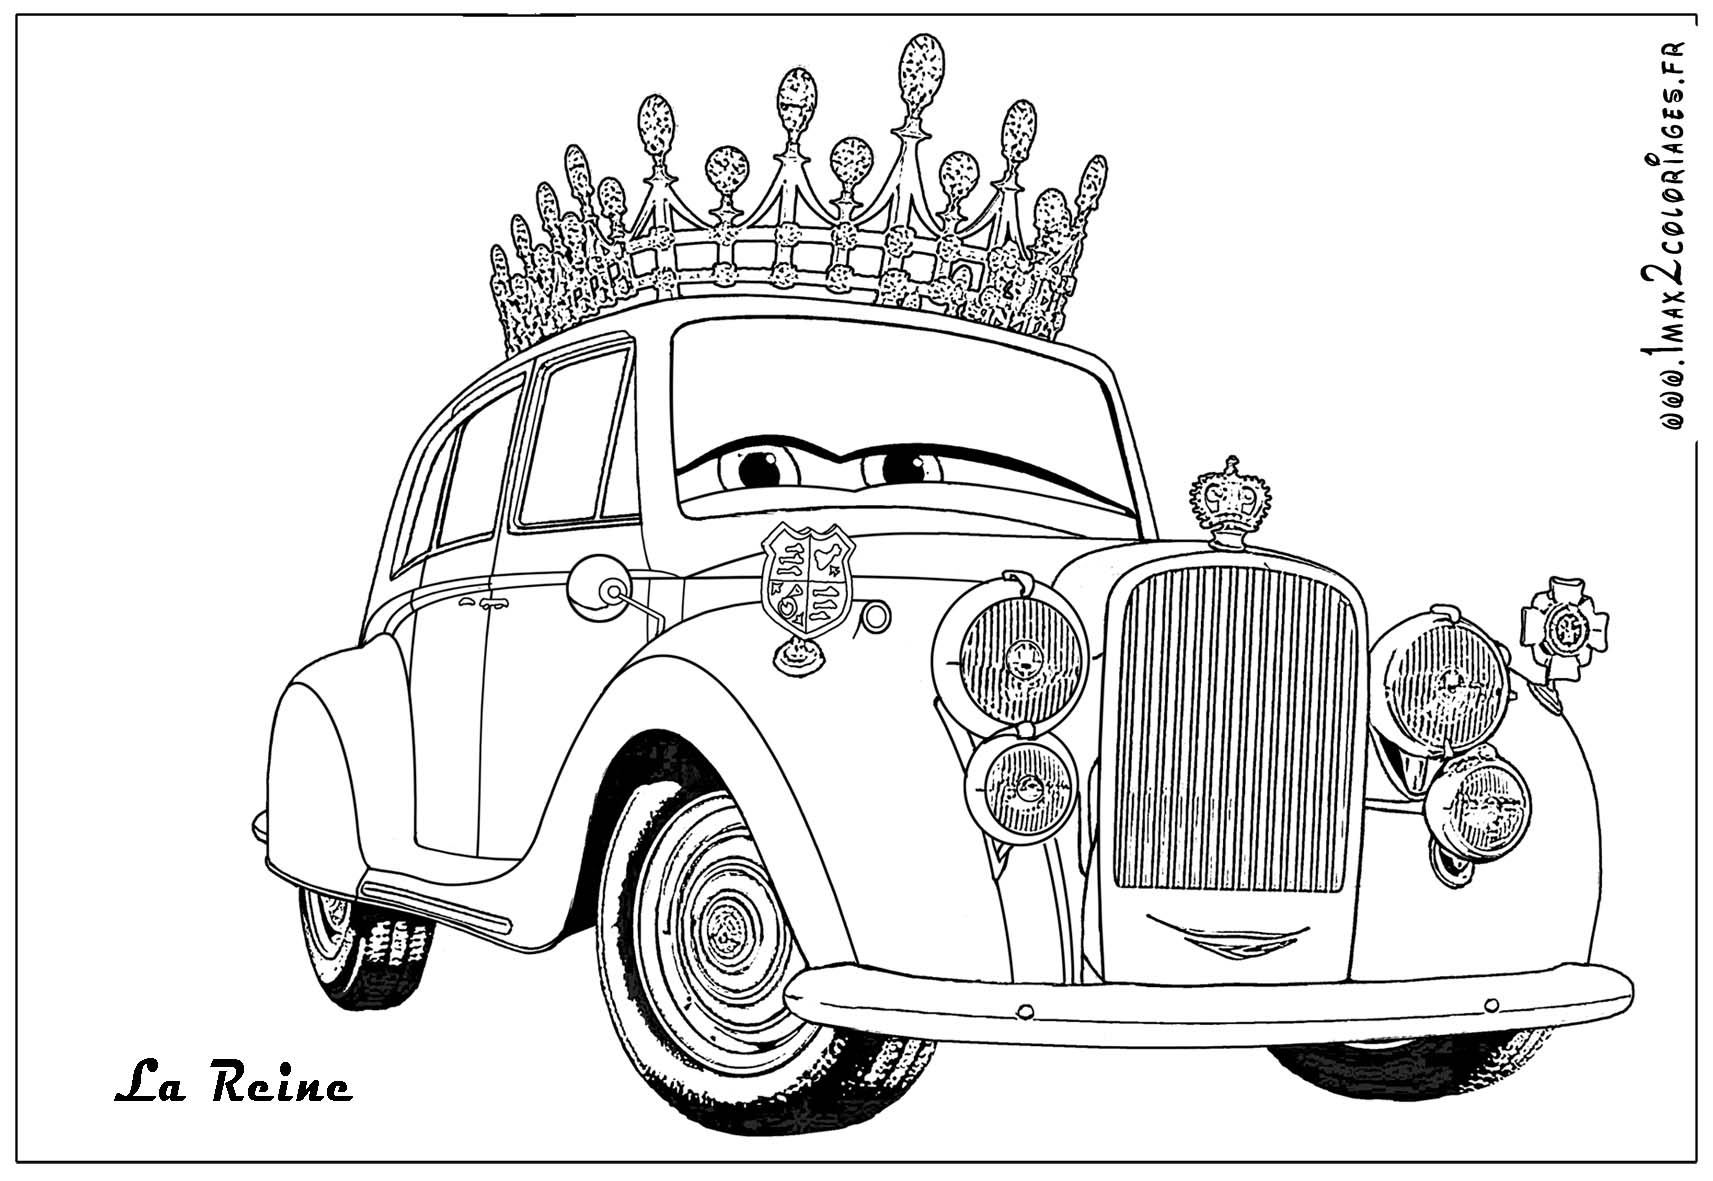 Coloriages cars2 10 coloriage cars 2 coloriages pour enfants - Image a colorier cars 2 ...